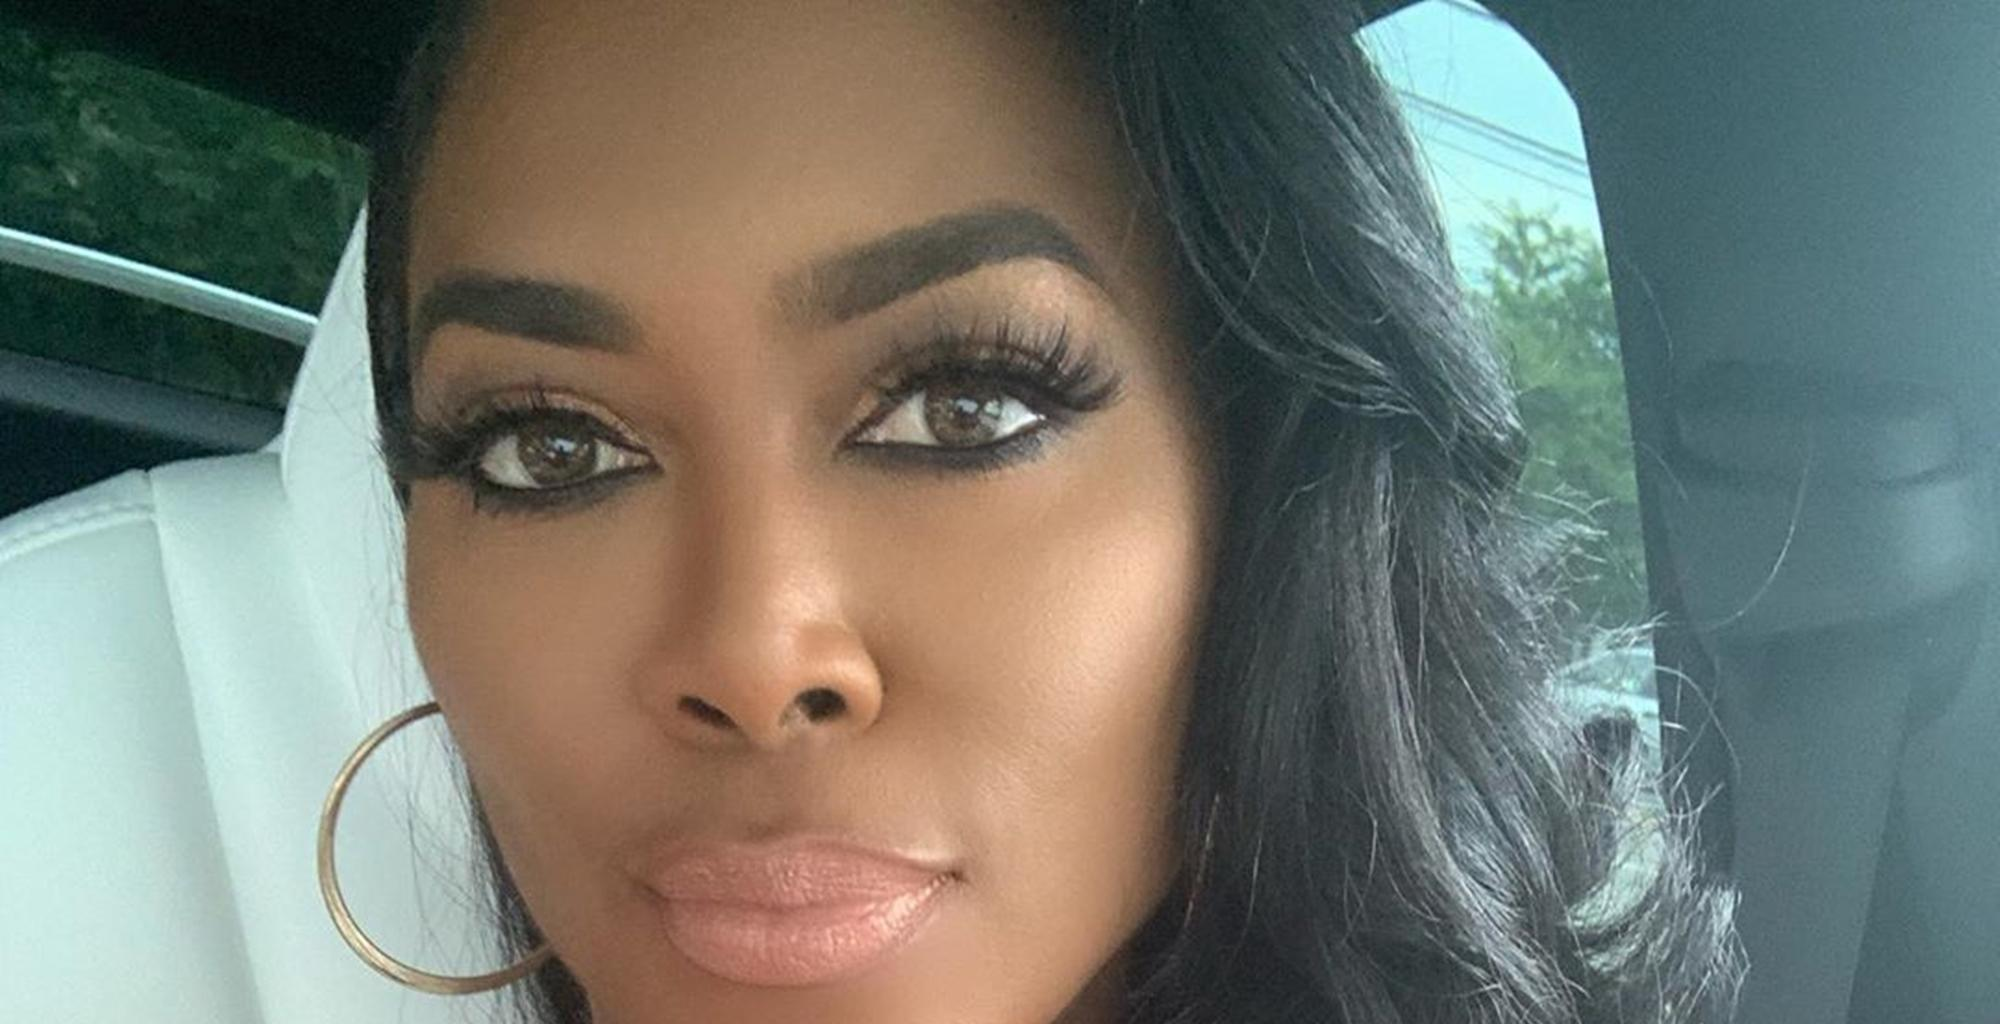 Kenya Moore And Marlo Hampton Hurl Insults At Each Other In New Video As Kandi Burruss And Porsha Williams Watch On